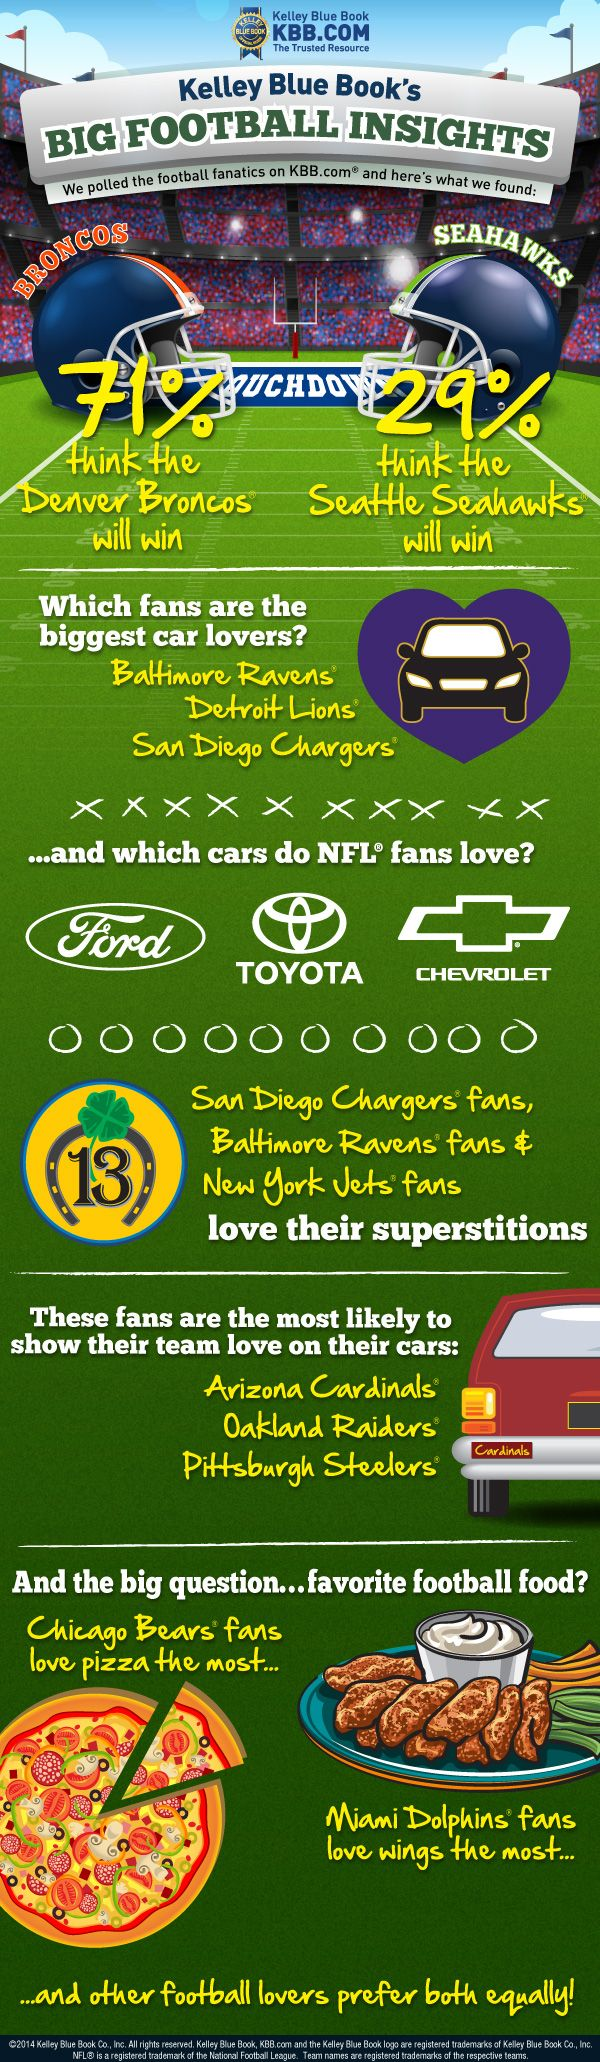 Kelley blue book s big football insights